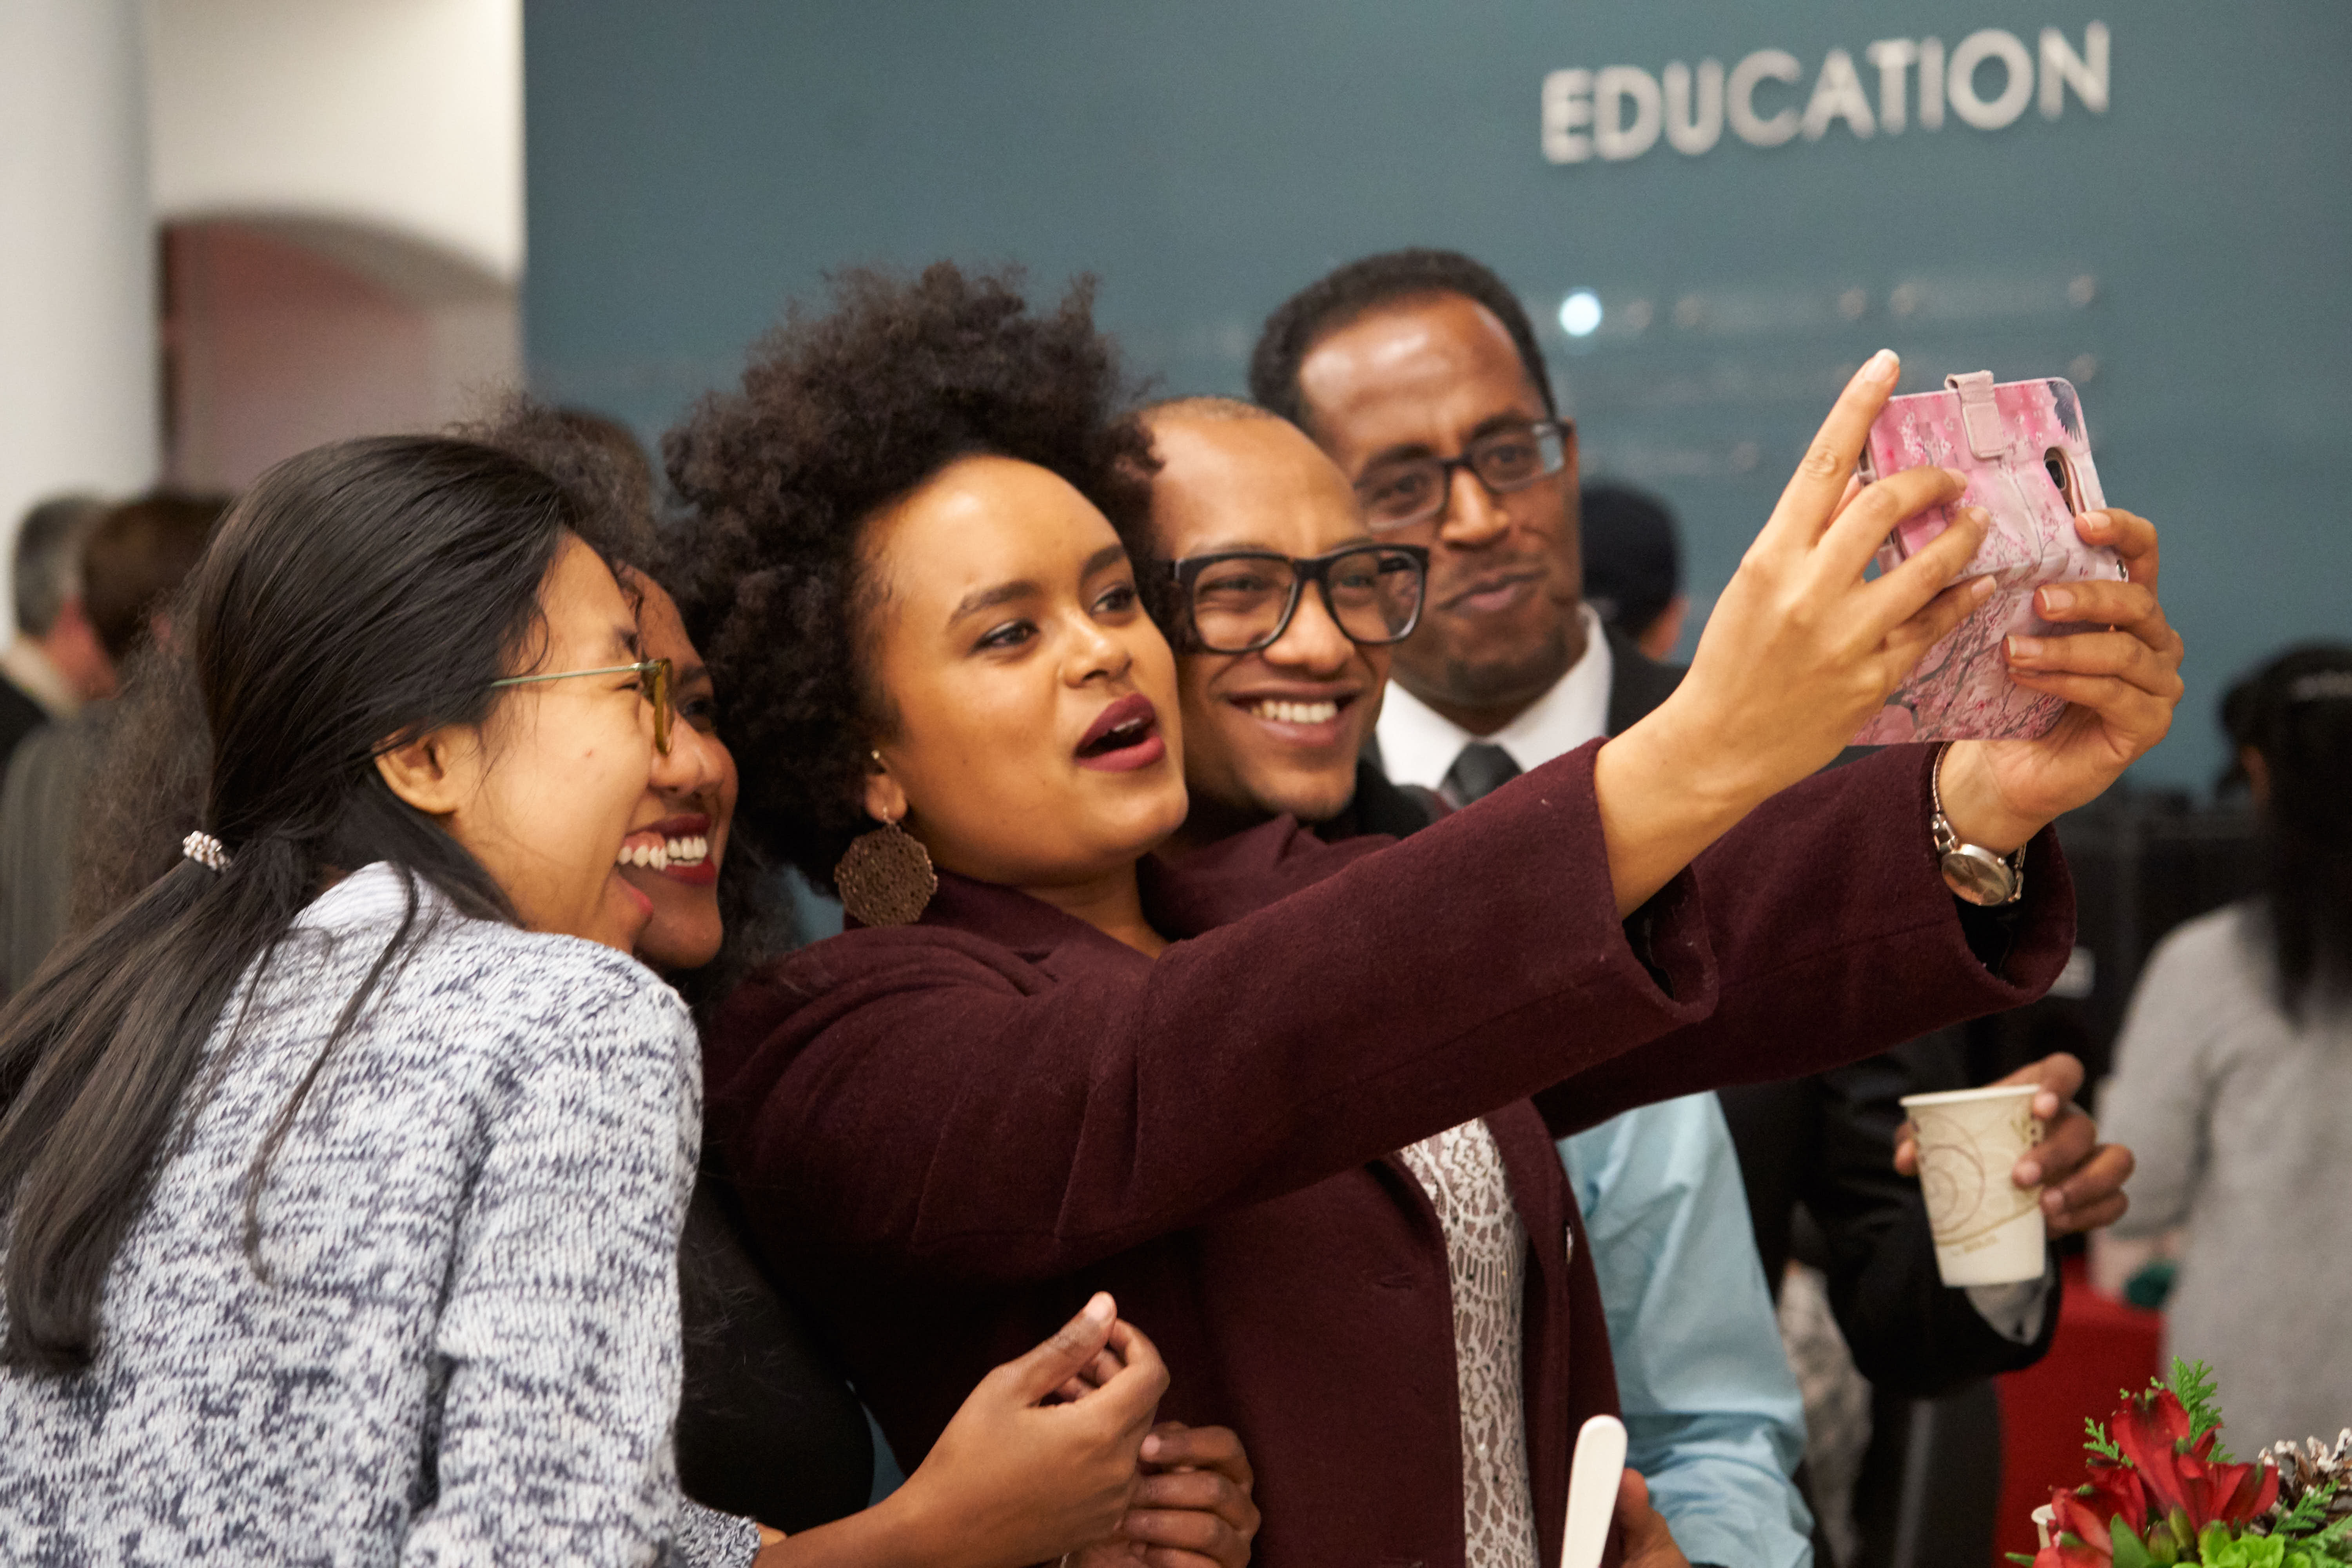 Four students take a selfie at their graduation reception